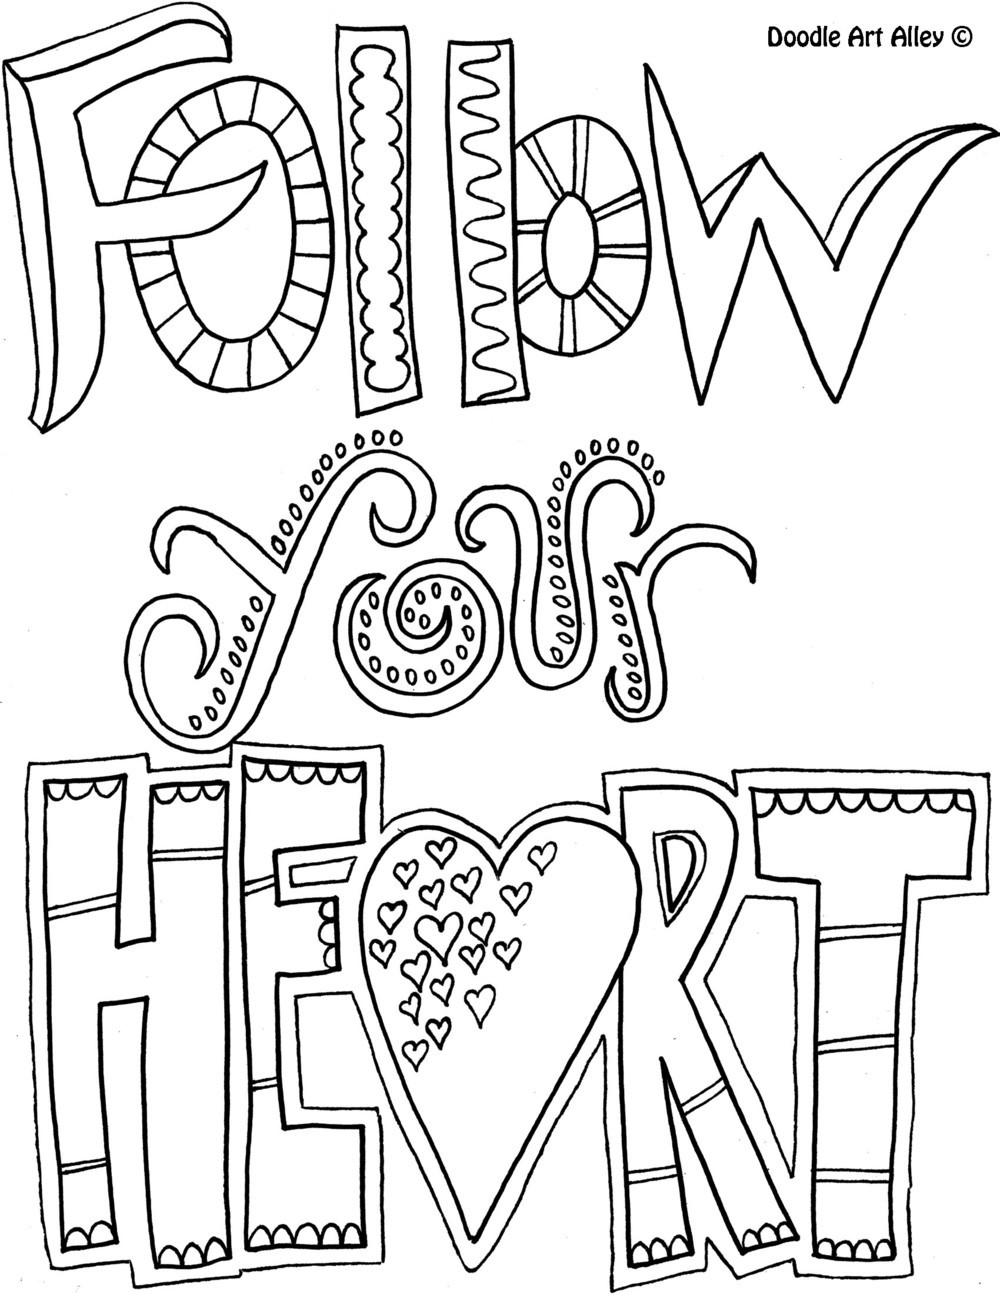 Quote Coloring Pages For Adults  Be e a Coloring book Enthusiast with Doodle Art Alley